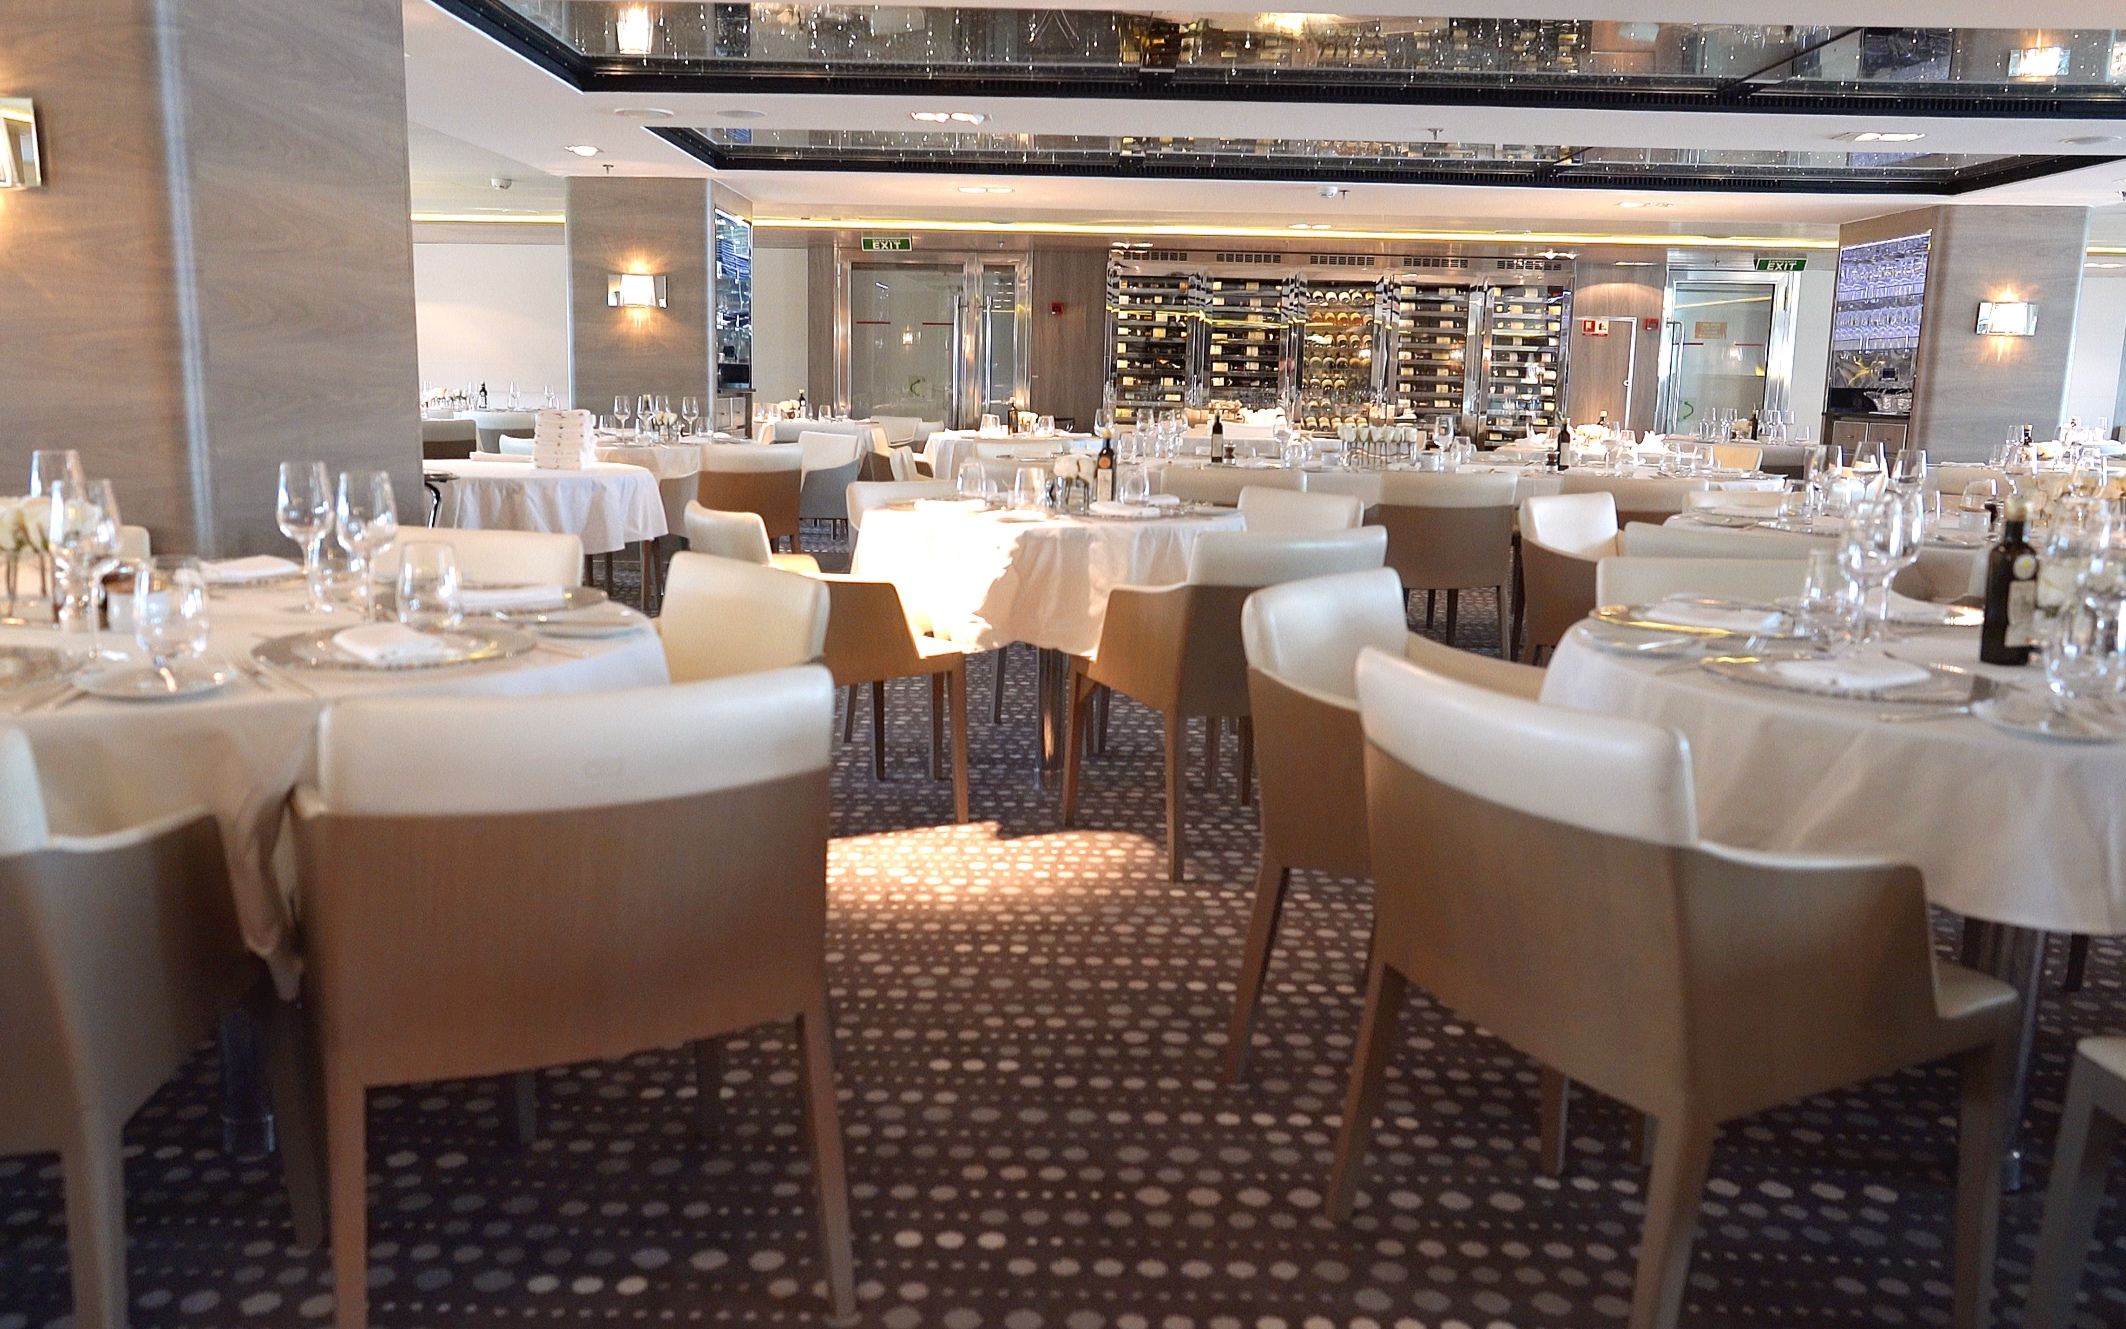 The light and sophisticated styling in the main dining room.